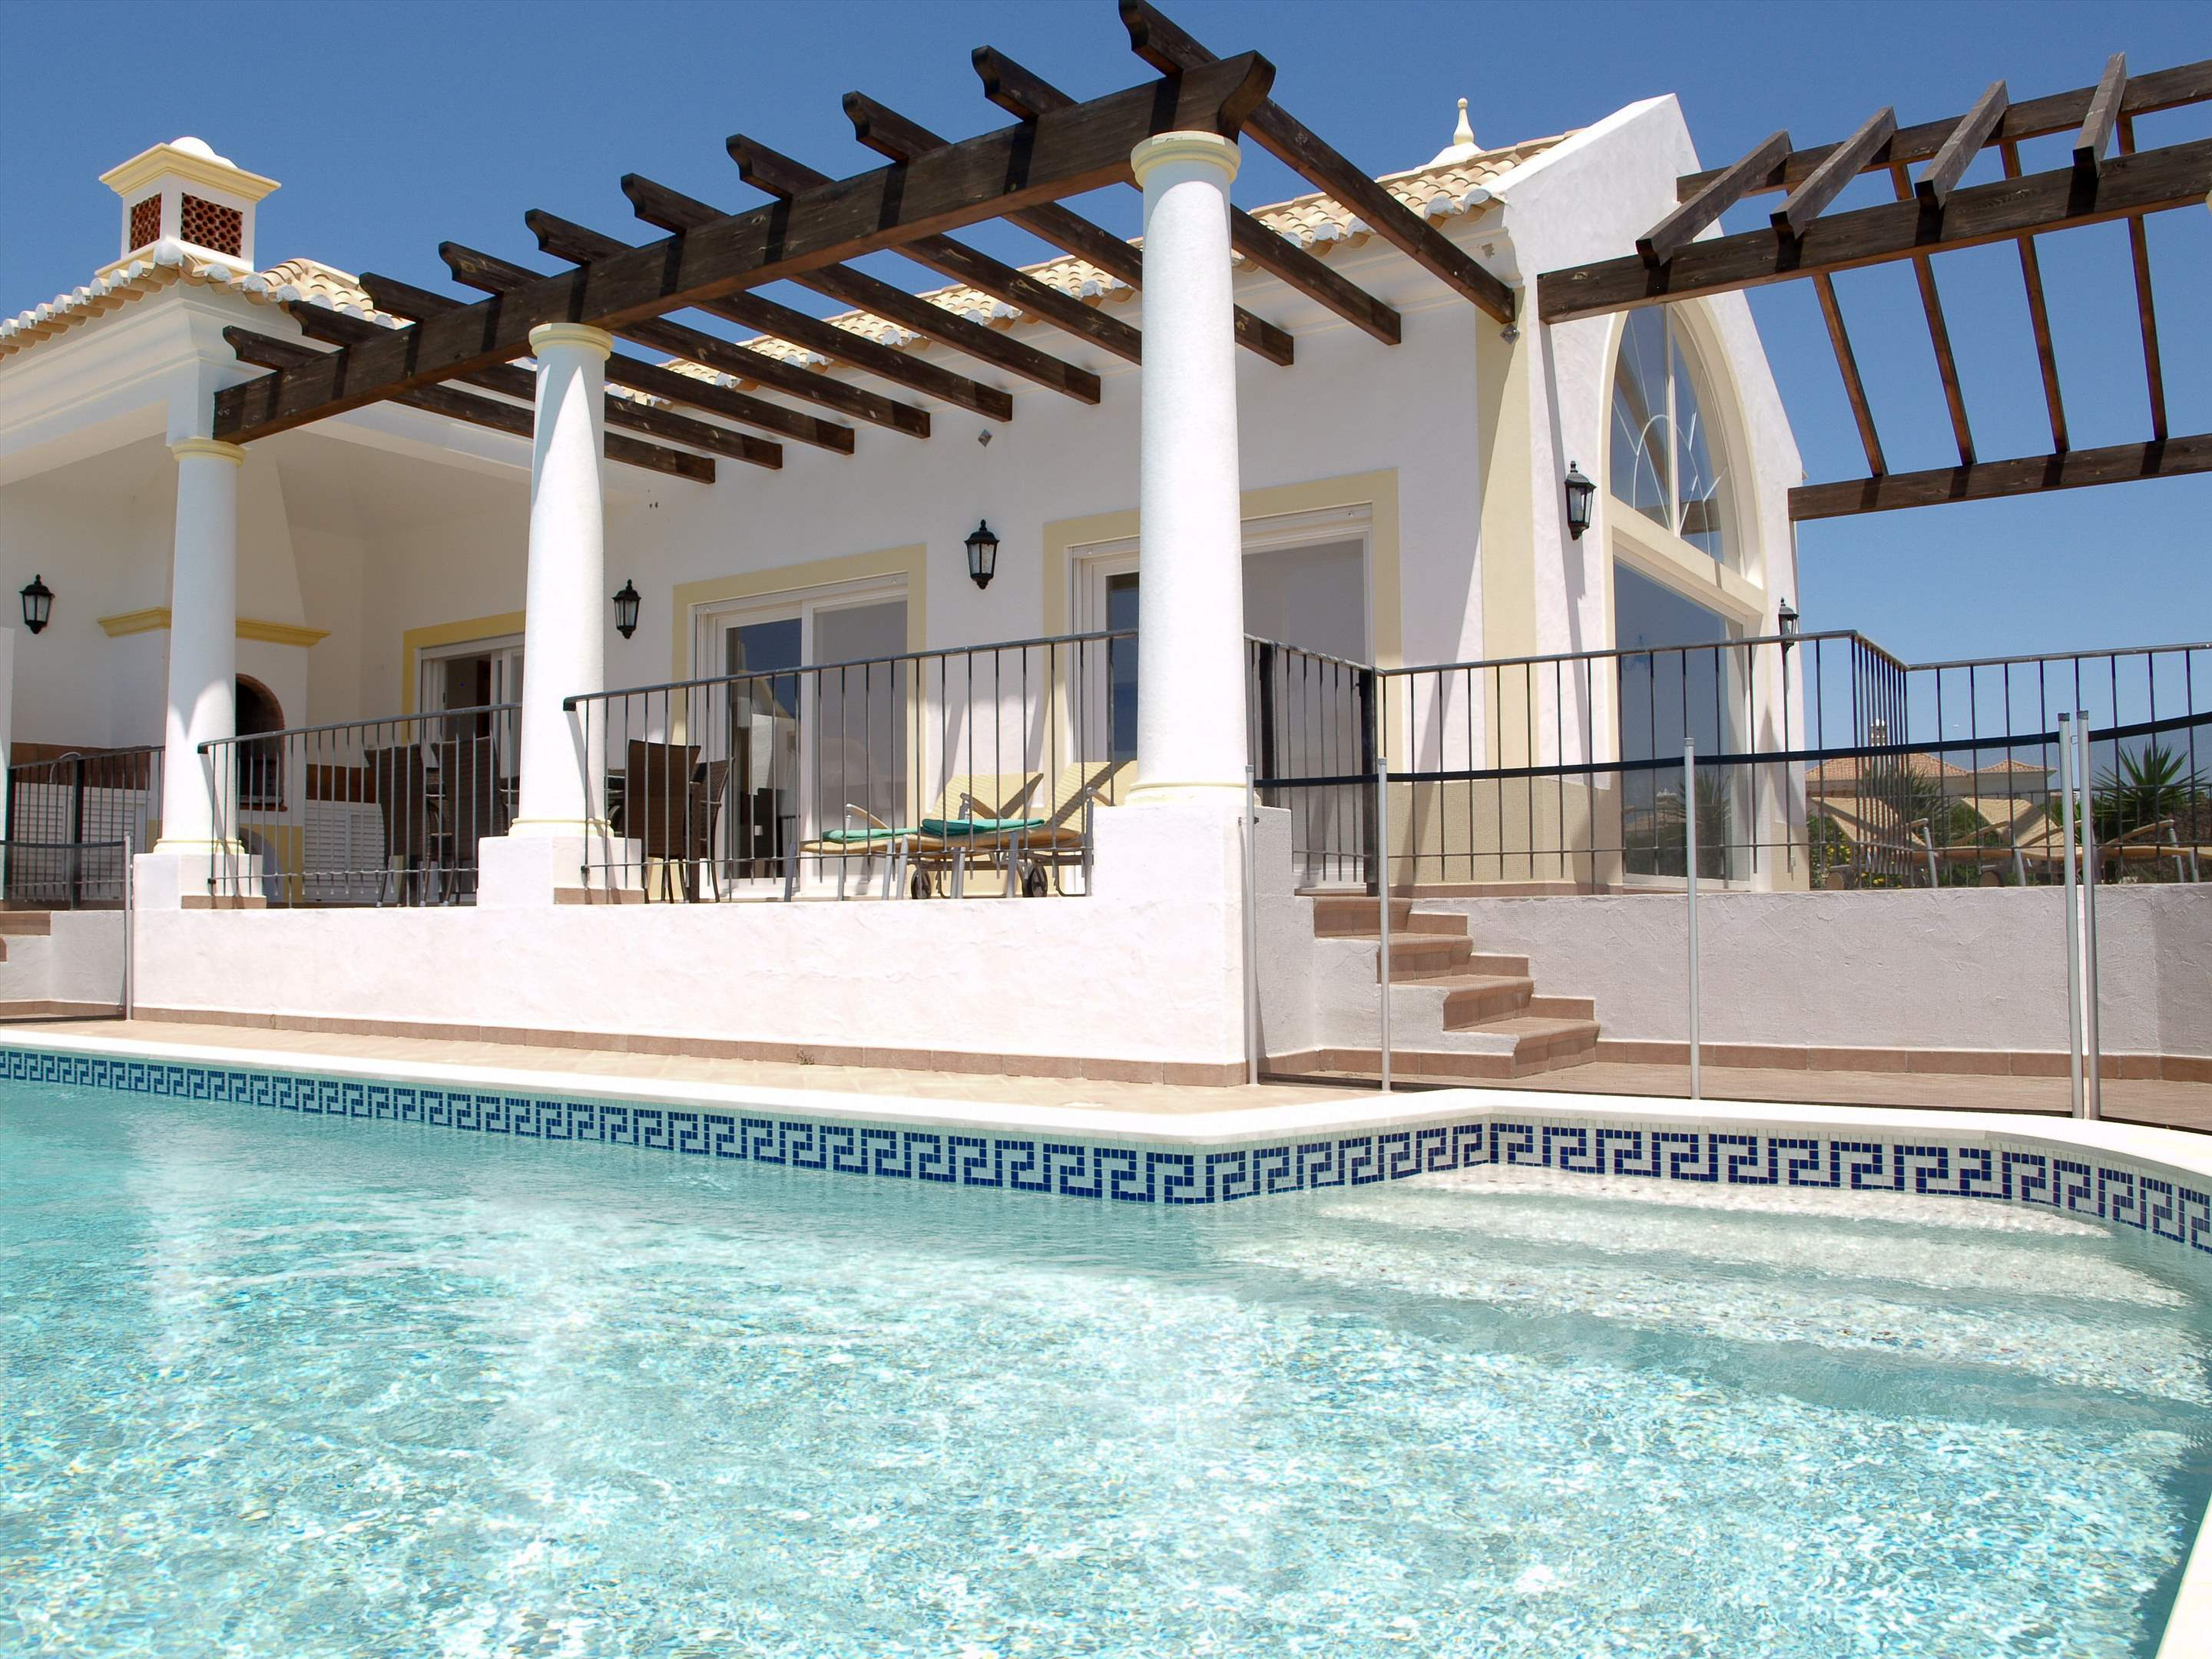 Martinhal Luxury Villa No.8, Three Bedroom Villa, 3 bedroom villa in Martinhal Sagres, Algarve